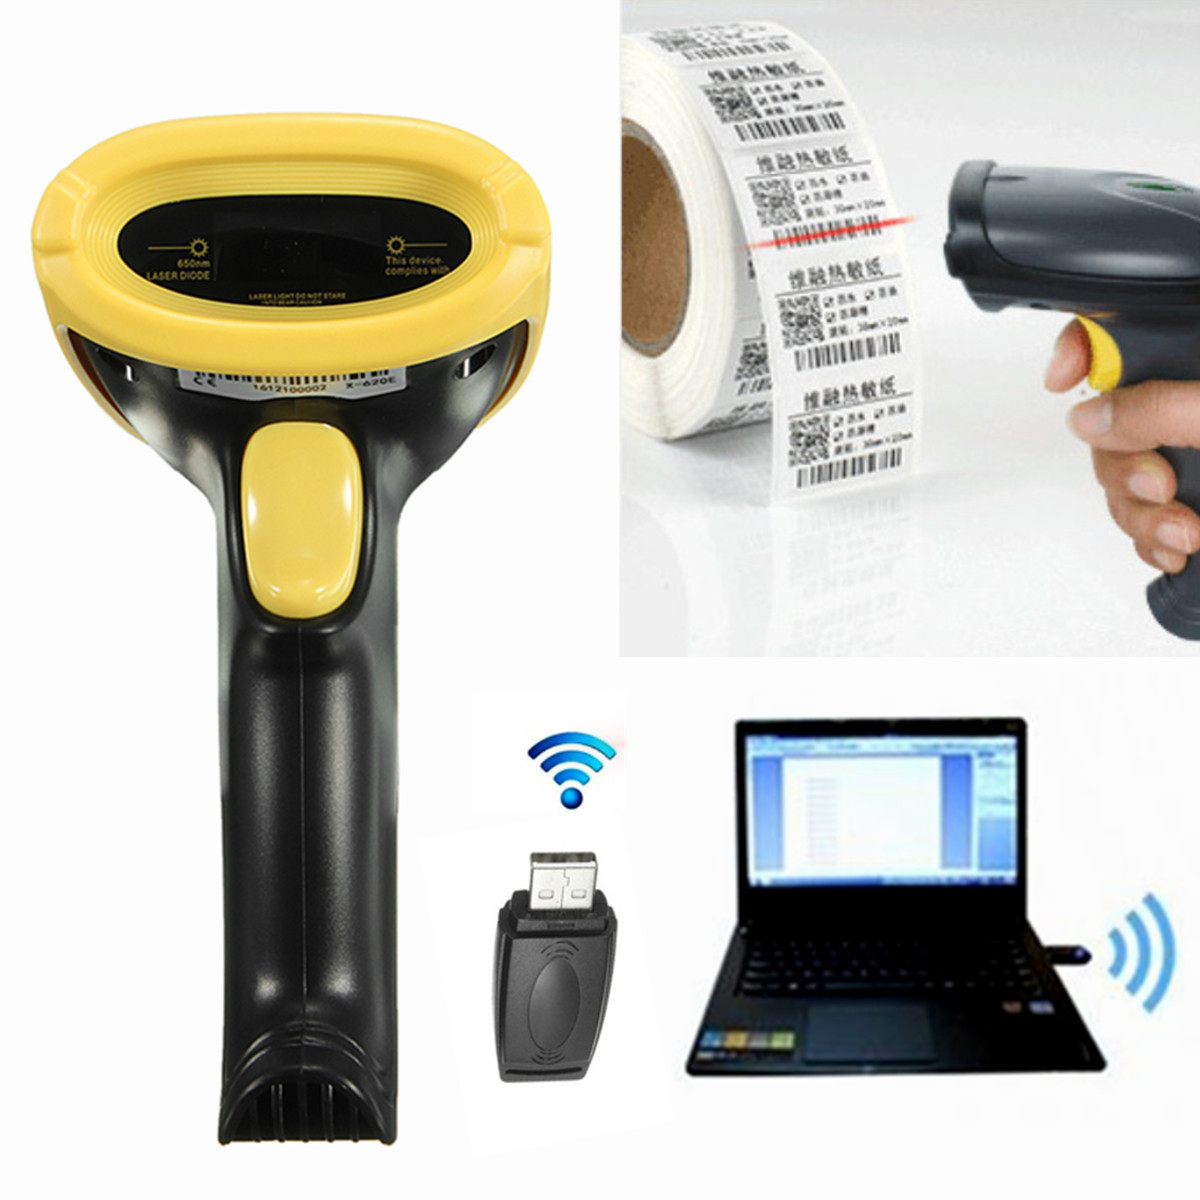 2.4GHz Portable Barcode Scanner USB WIFI Handheld Visible Wireless Laser Cordless Barcode Reader For Supermarket Shop usb laser handheld barcode scanner reader for desktop laptop 2m cable page 1